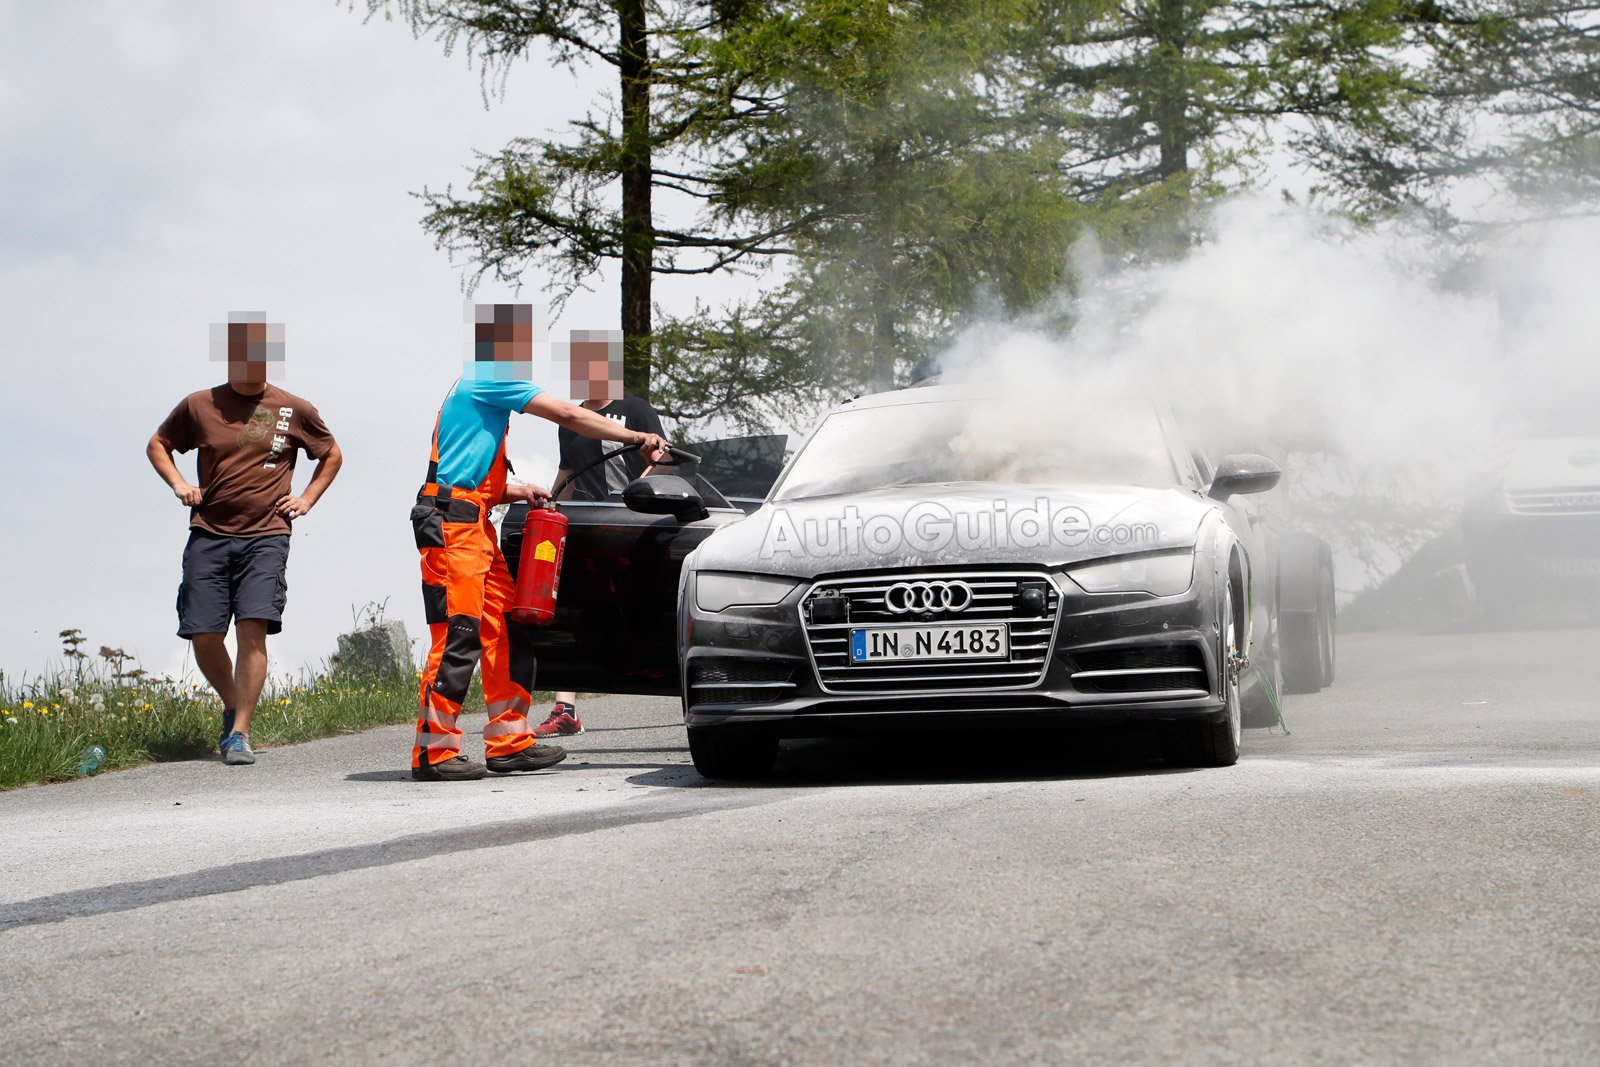 Audi A Test Car Goes Up In Flames During Testing AutoGuide - Audi car 04